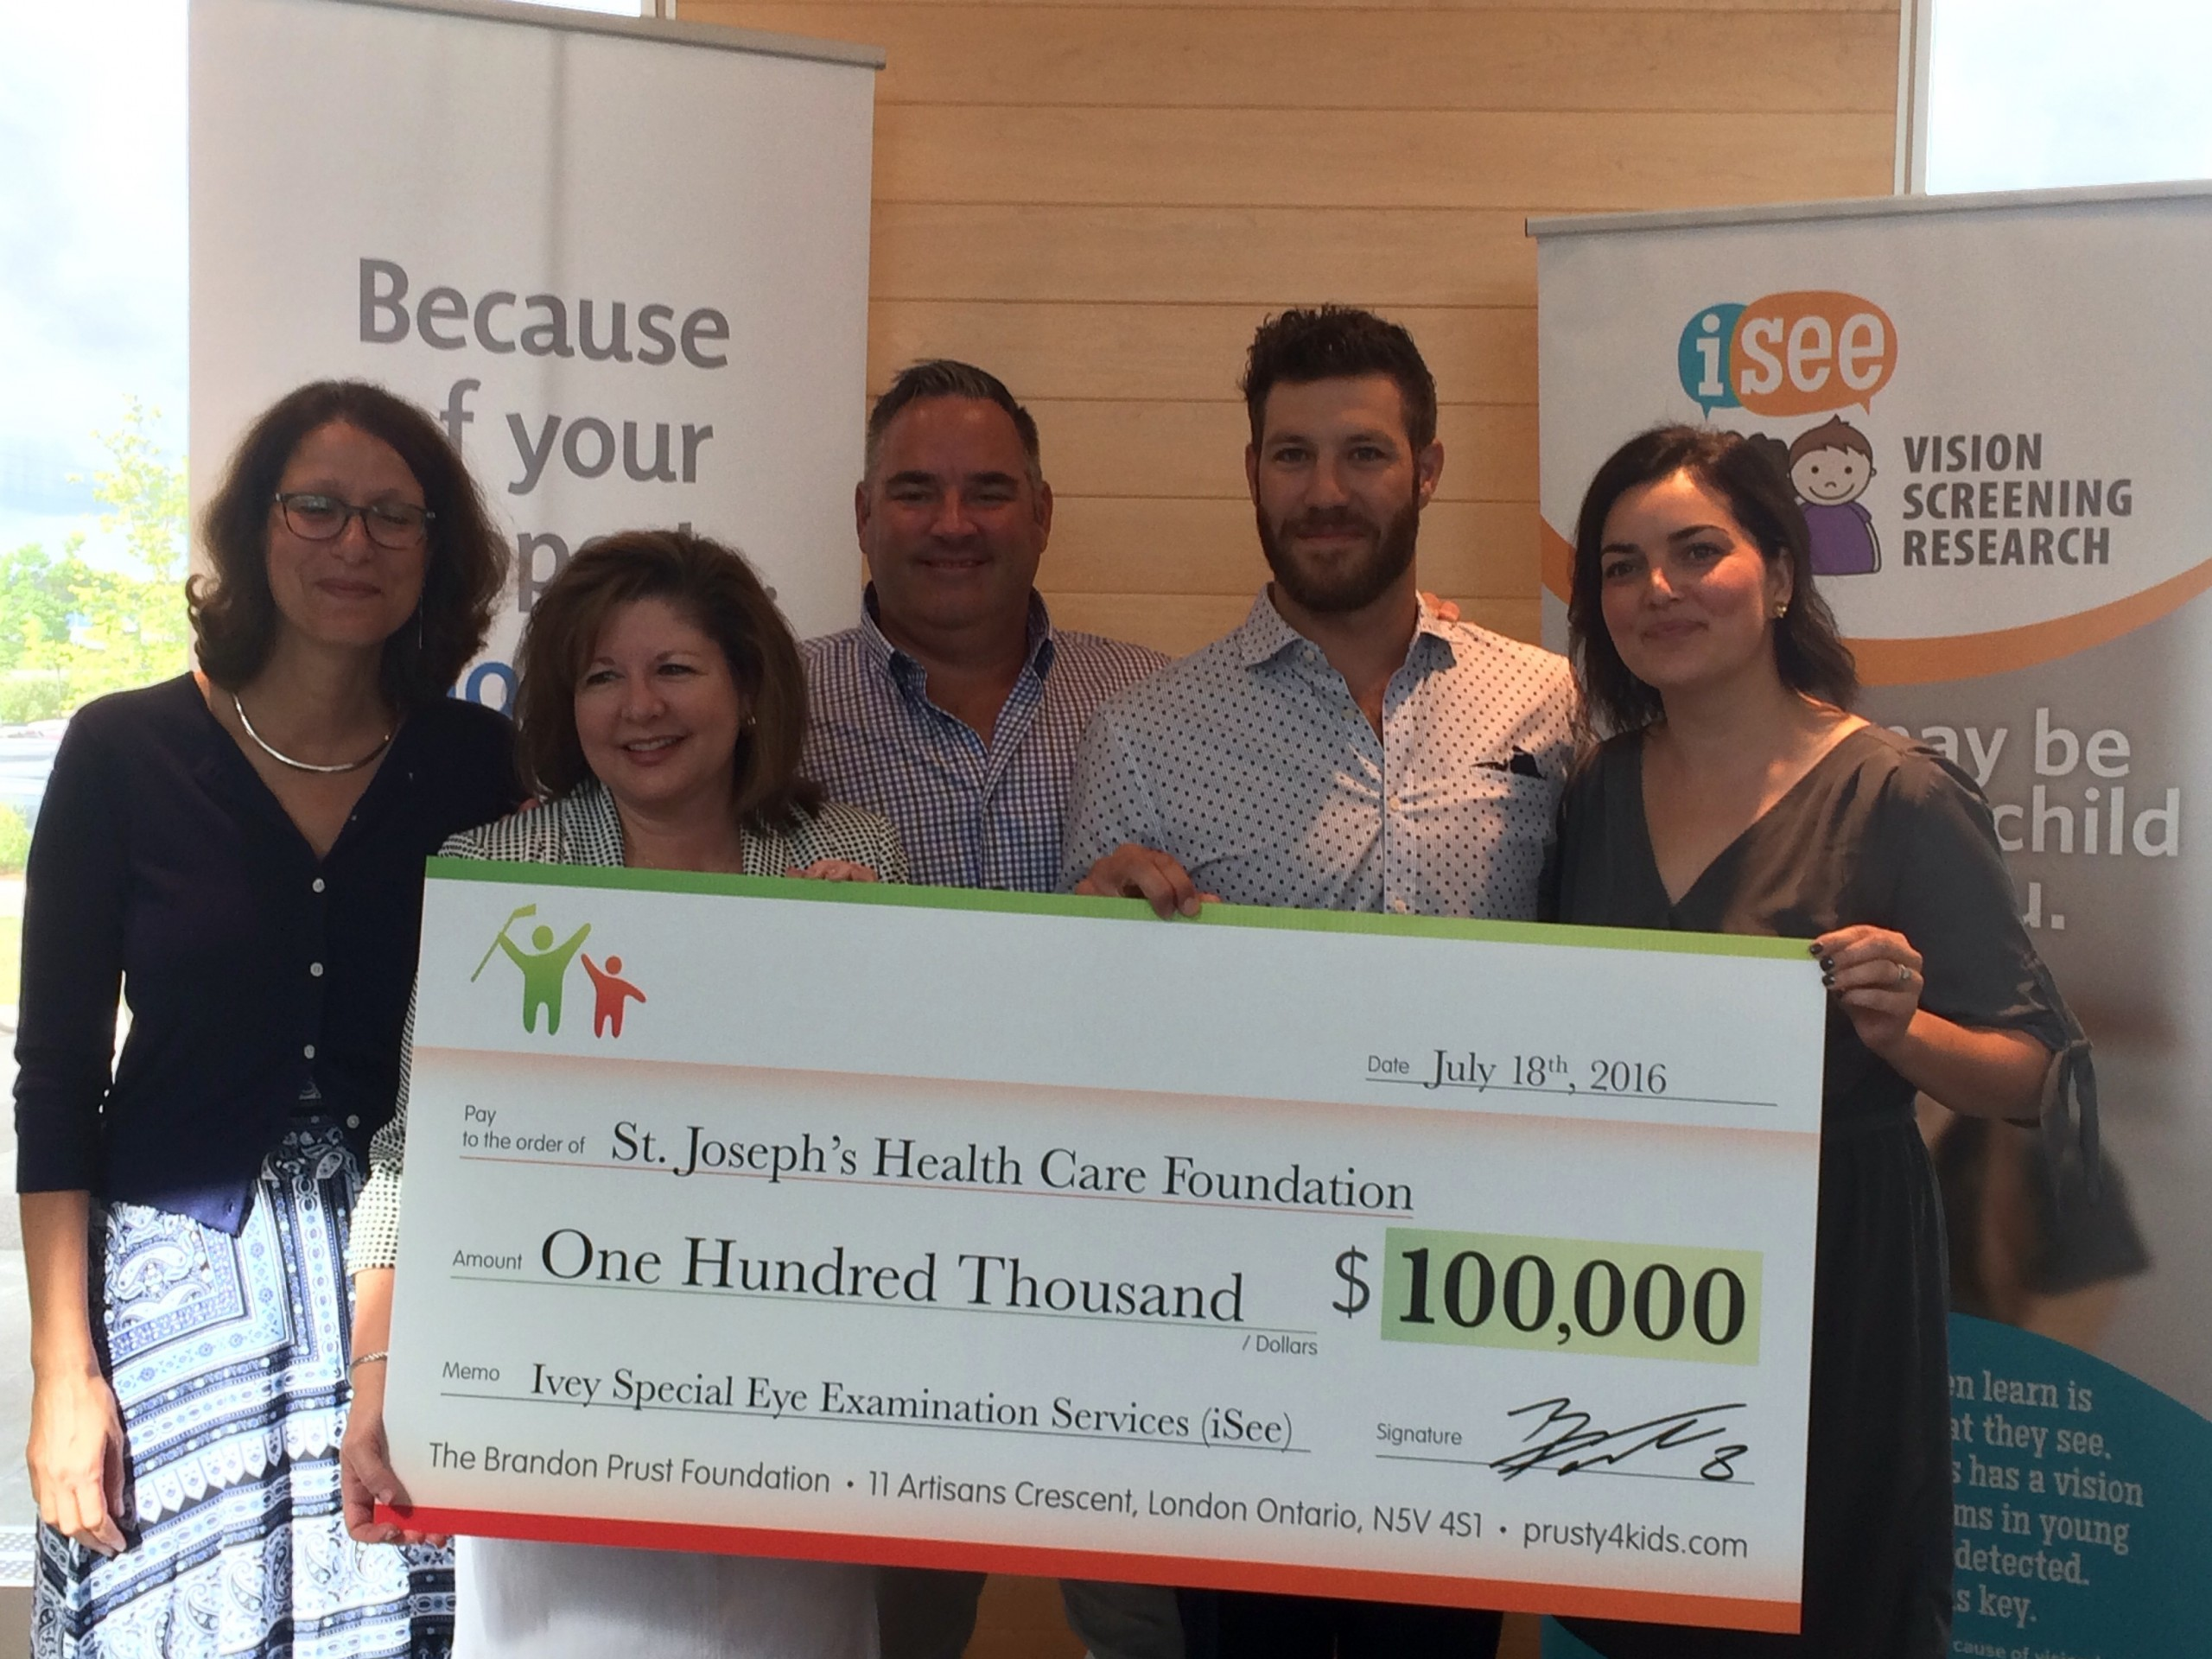 St. Joesph's Health Care Foundation